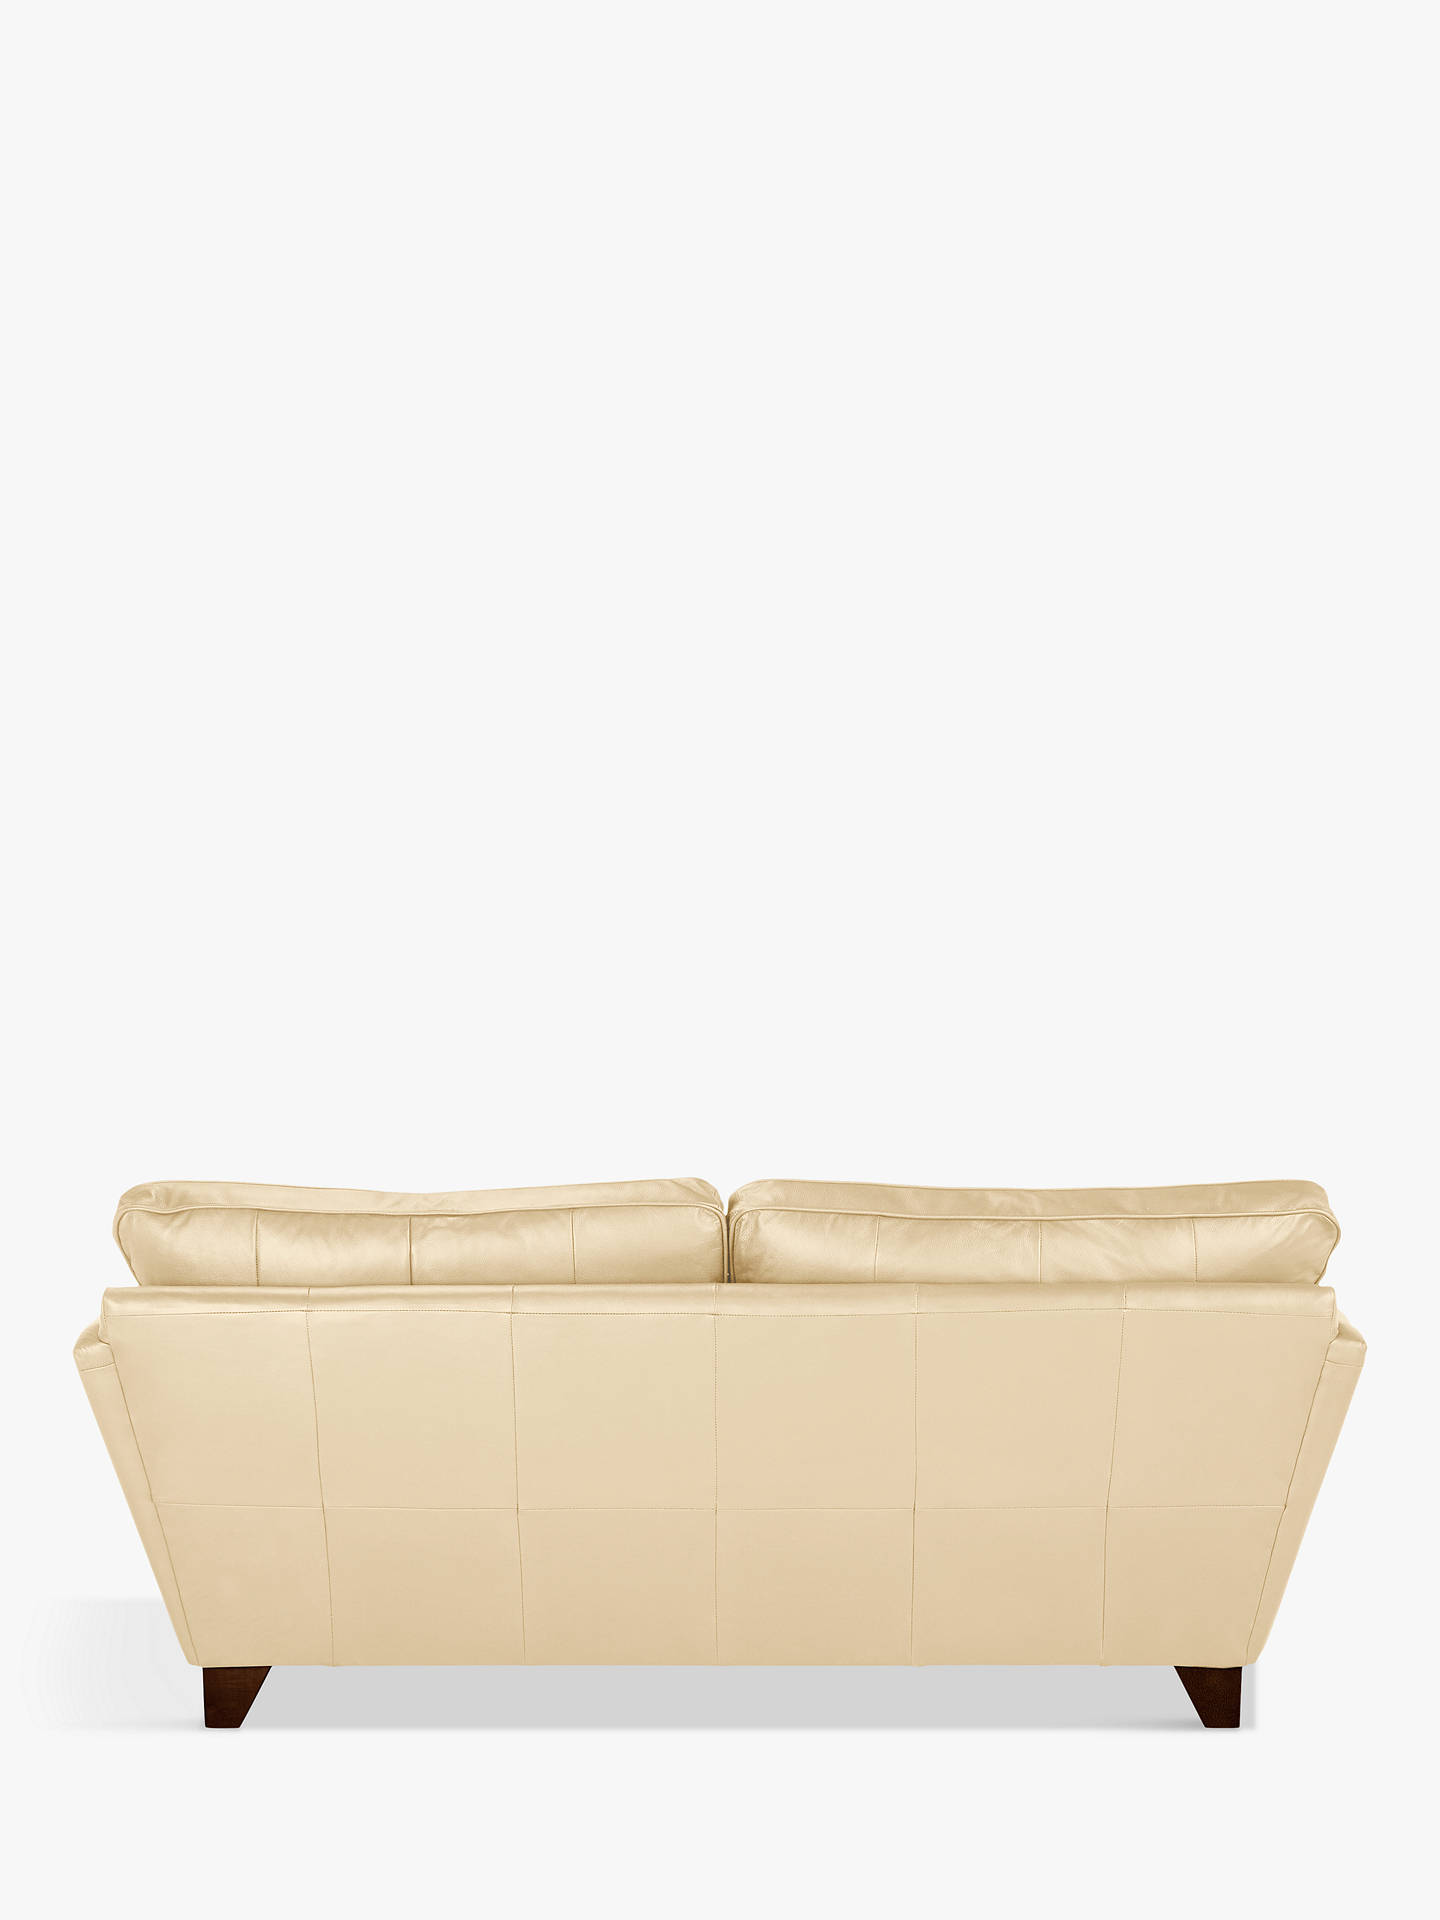 Buy John Lewis & Partners Oslo Leather Large 3 Seater Sofa, Dark Leg, Nature Cream Online at johnlewis.com